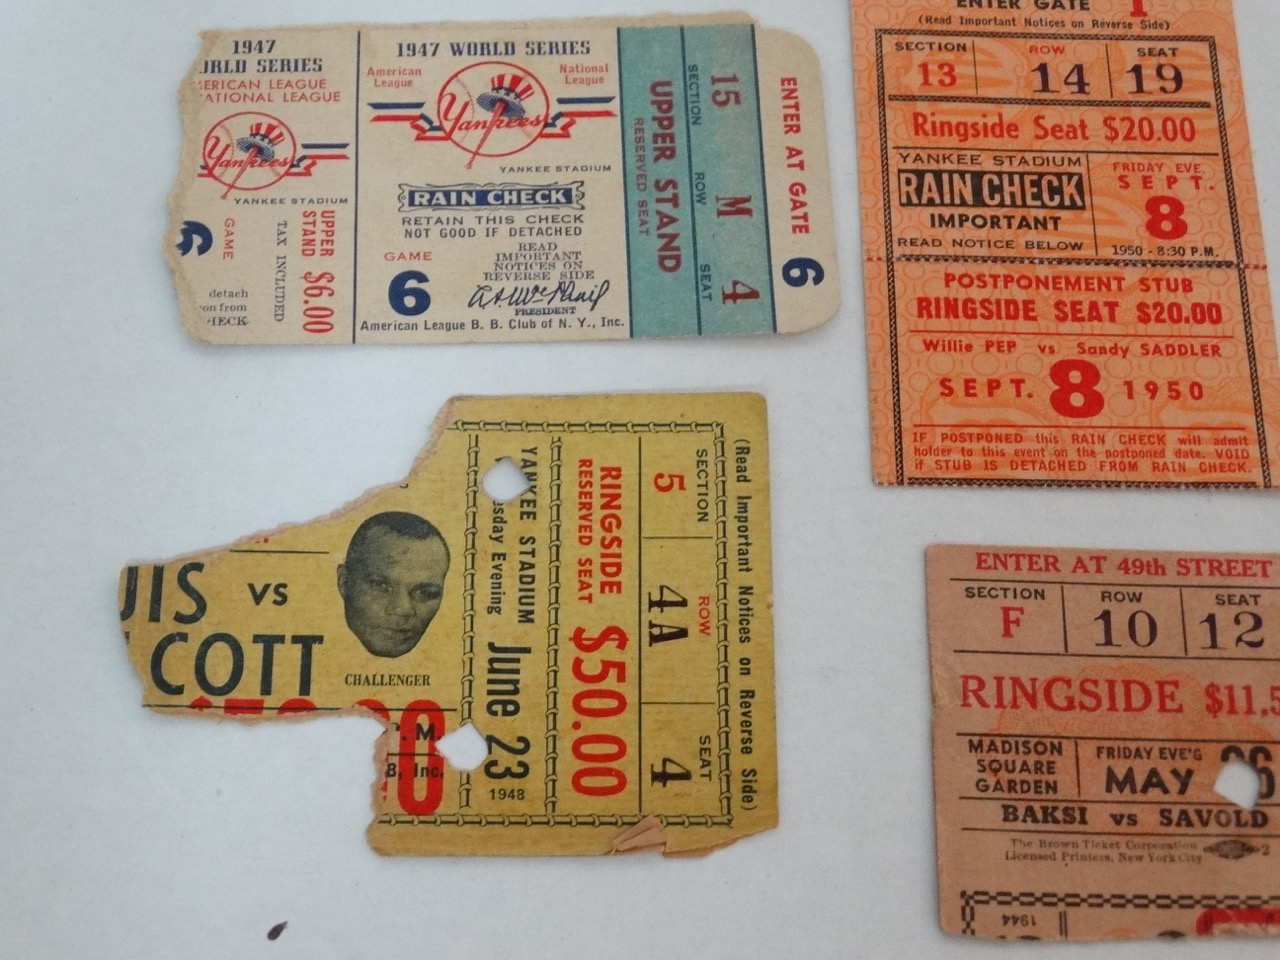 Old Boxing Tickets Wiring Diagrams Light Laser Led Gt Xenon Circuits Simple Strobe Circuit L12379 Lot Detail Collection Of From 1944 To 1950 And Rh Puregolfauctions Com 1920